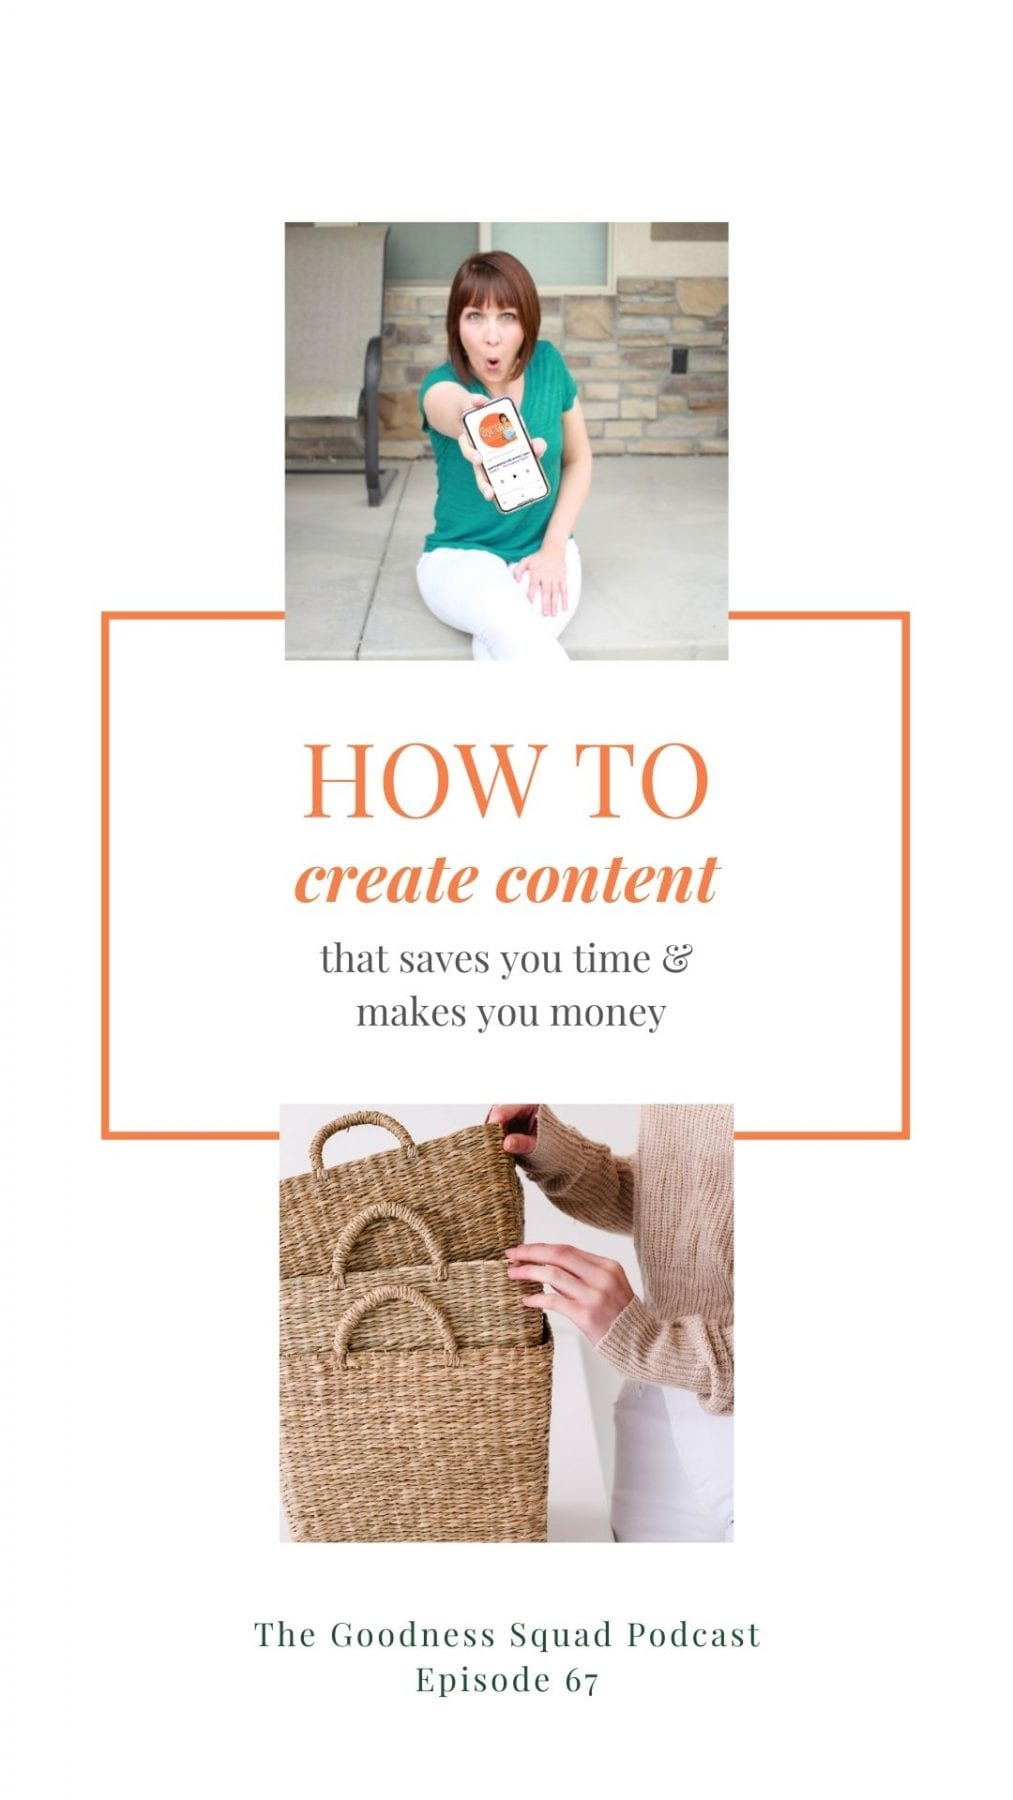 066_How to never run out of ideas for content that makes you money